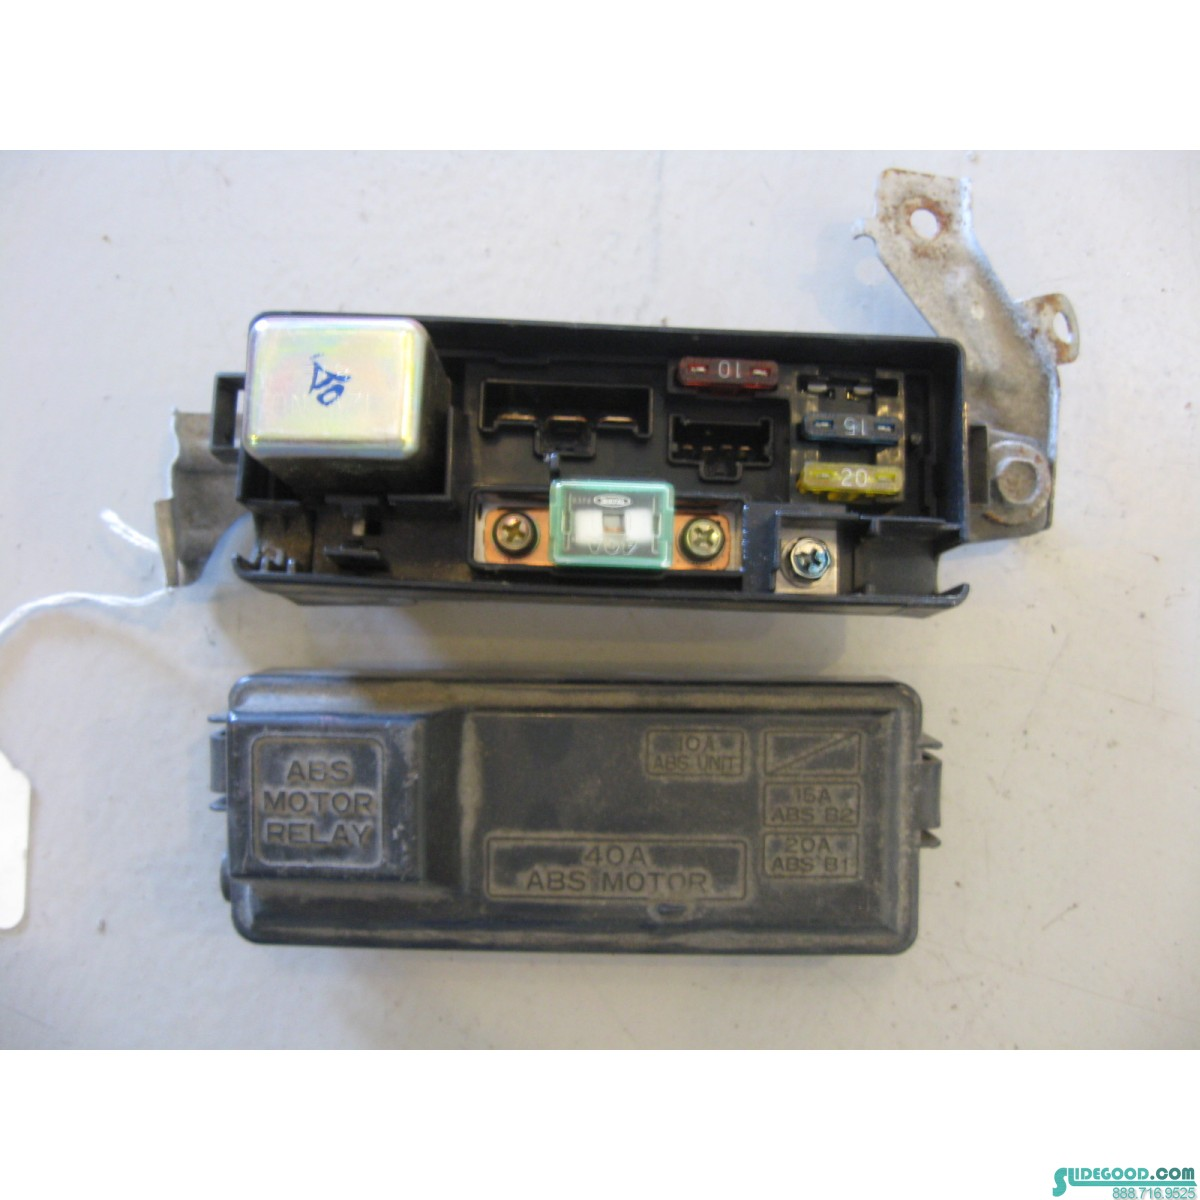 98 Acura INTEGRA ABS Motor Relay R5968